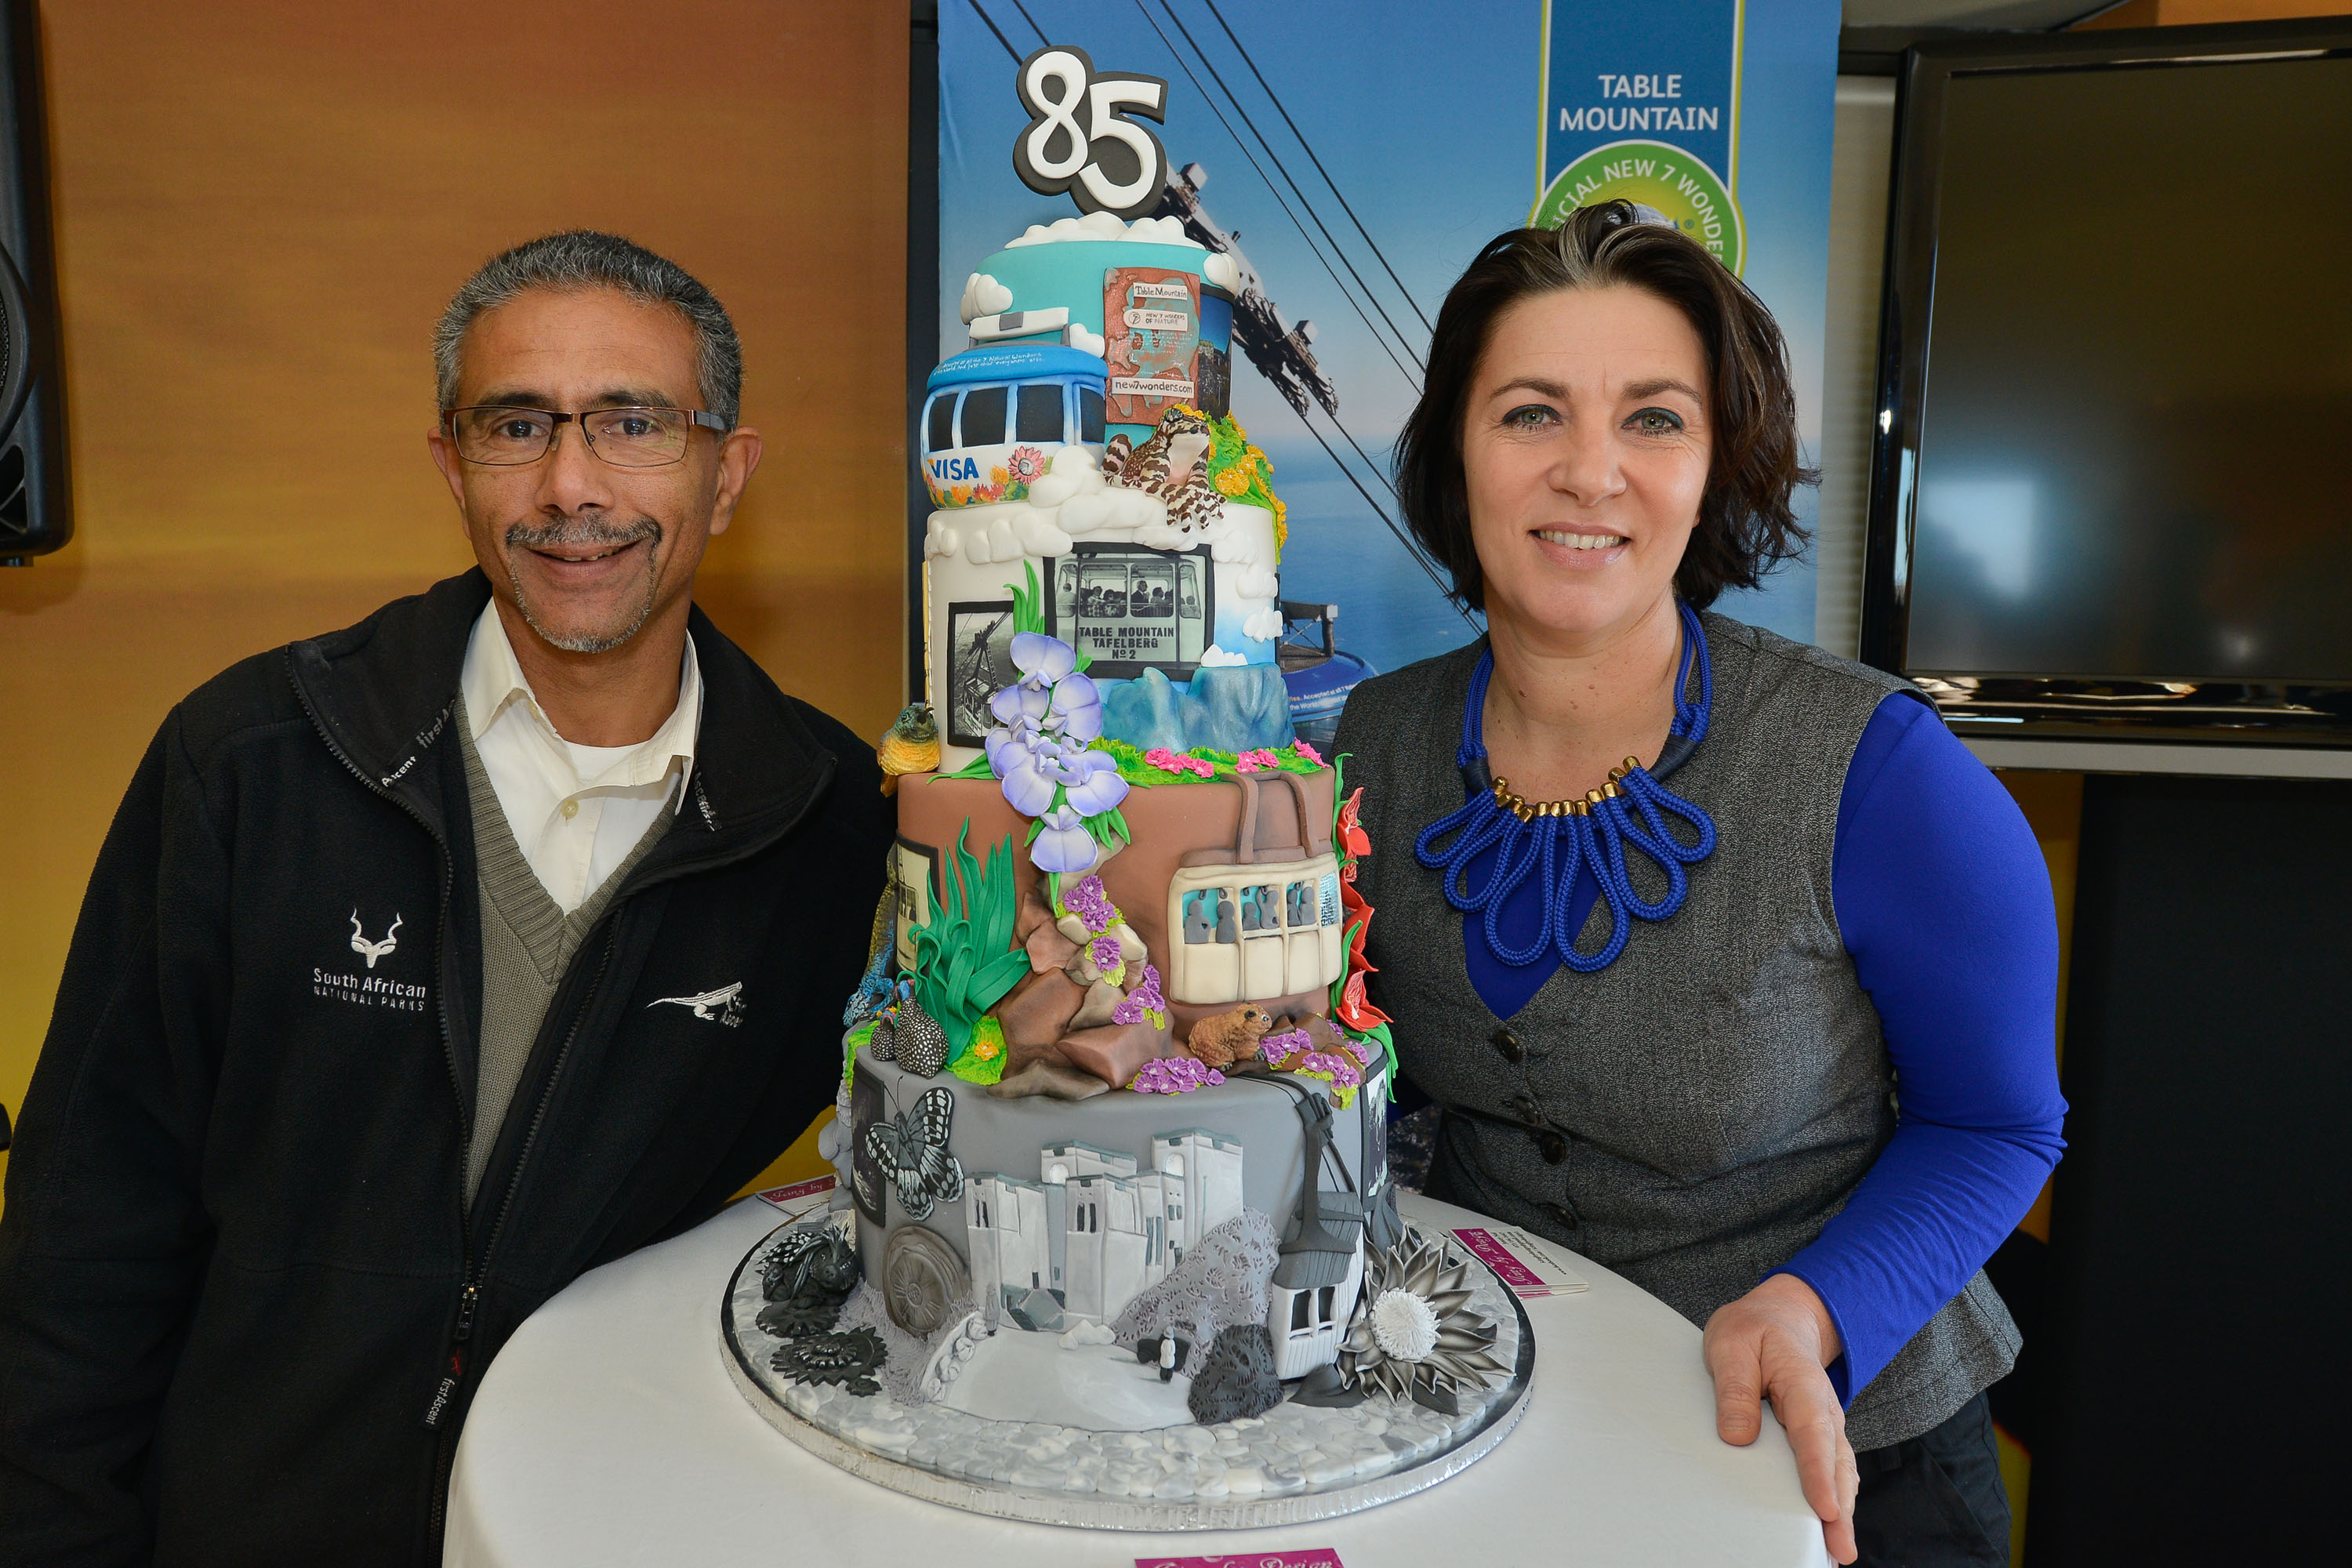 Table mountain aerial cableway turns 85 the next 48hours for Table 85 hours